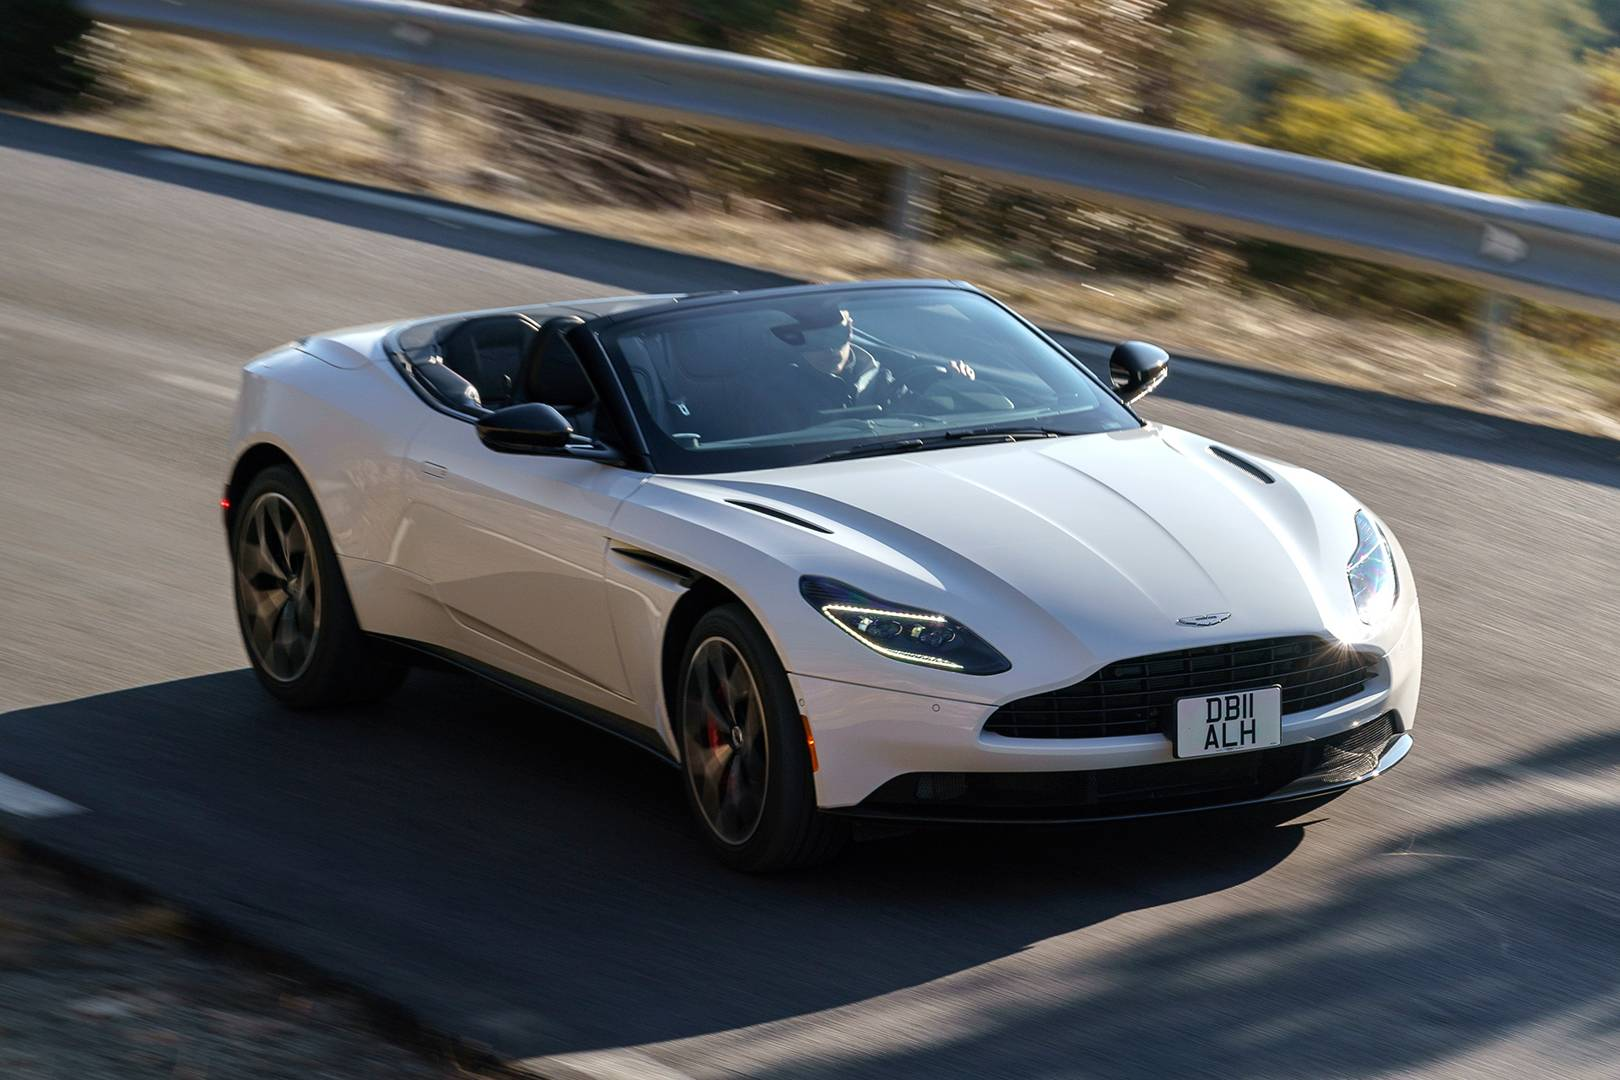 aston martin volante review: this year's most beautiful car